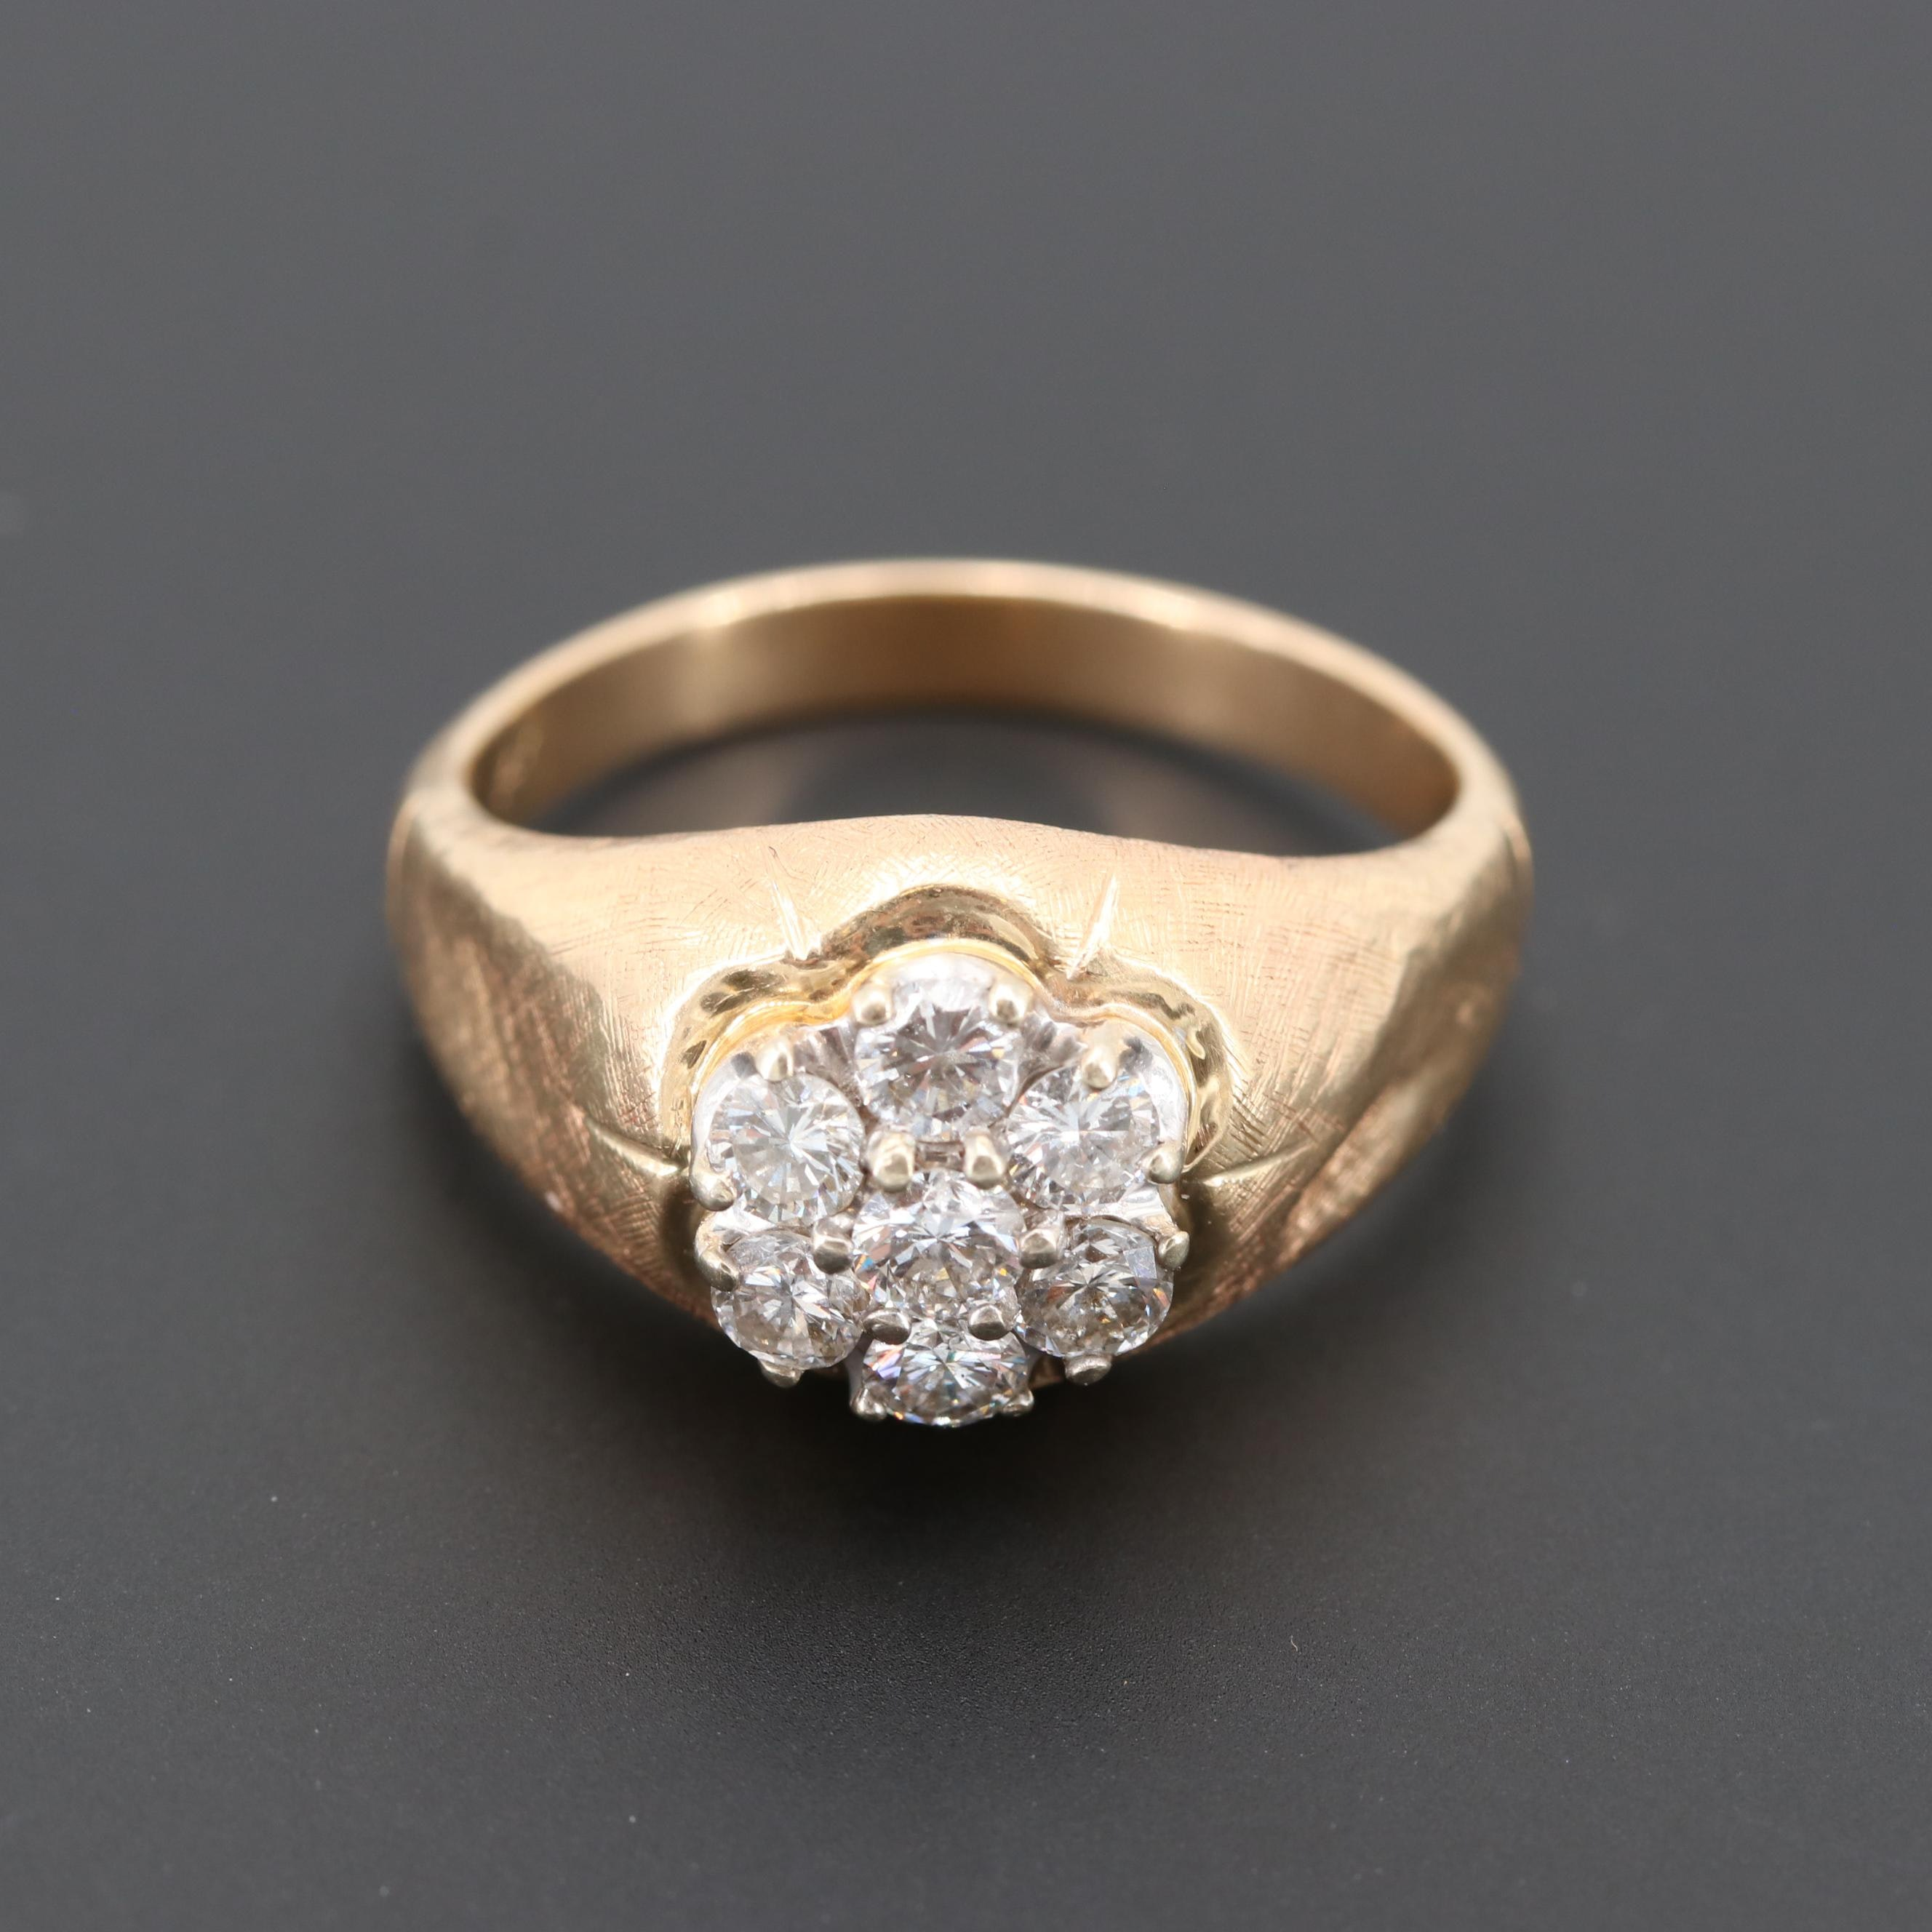 Vintage 14K Yellow Gold 1.21 CTW Diamond Ring